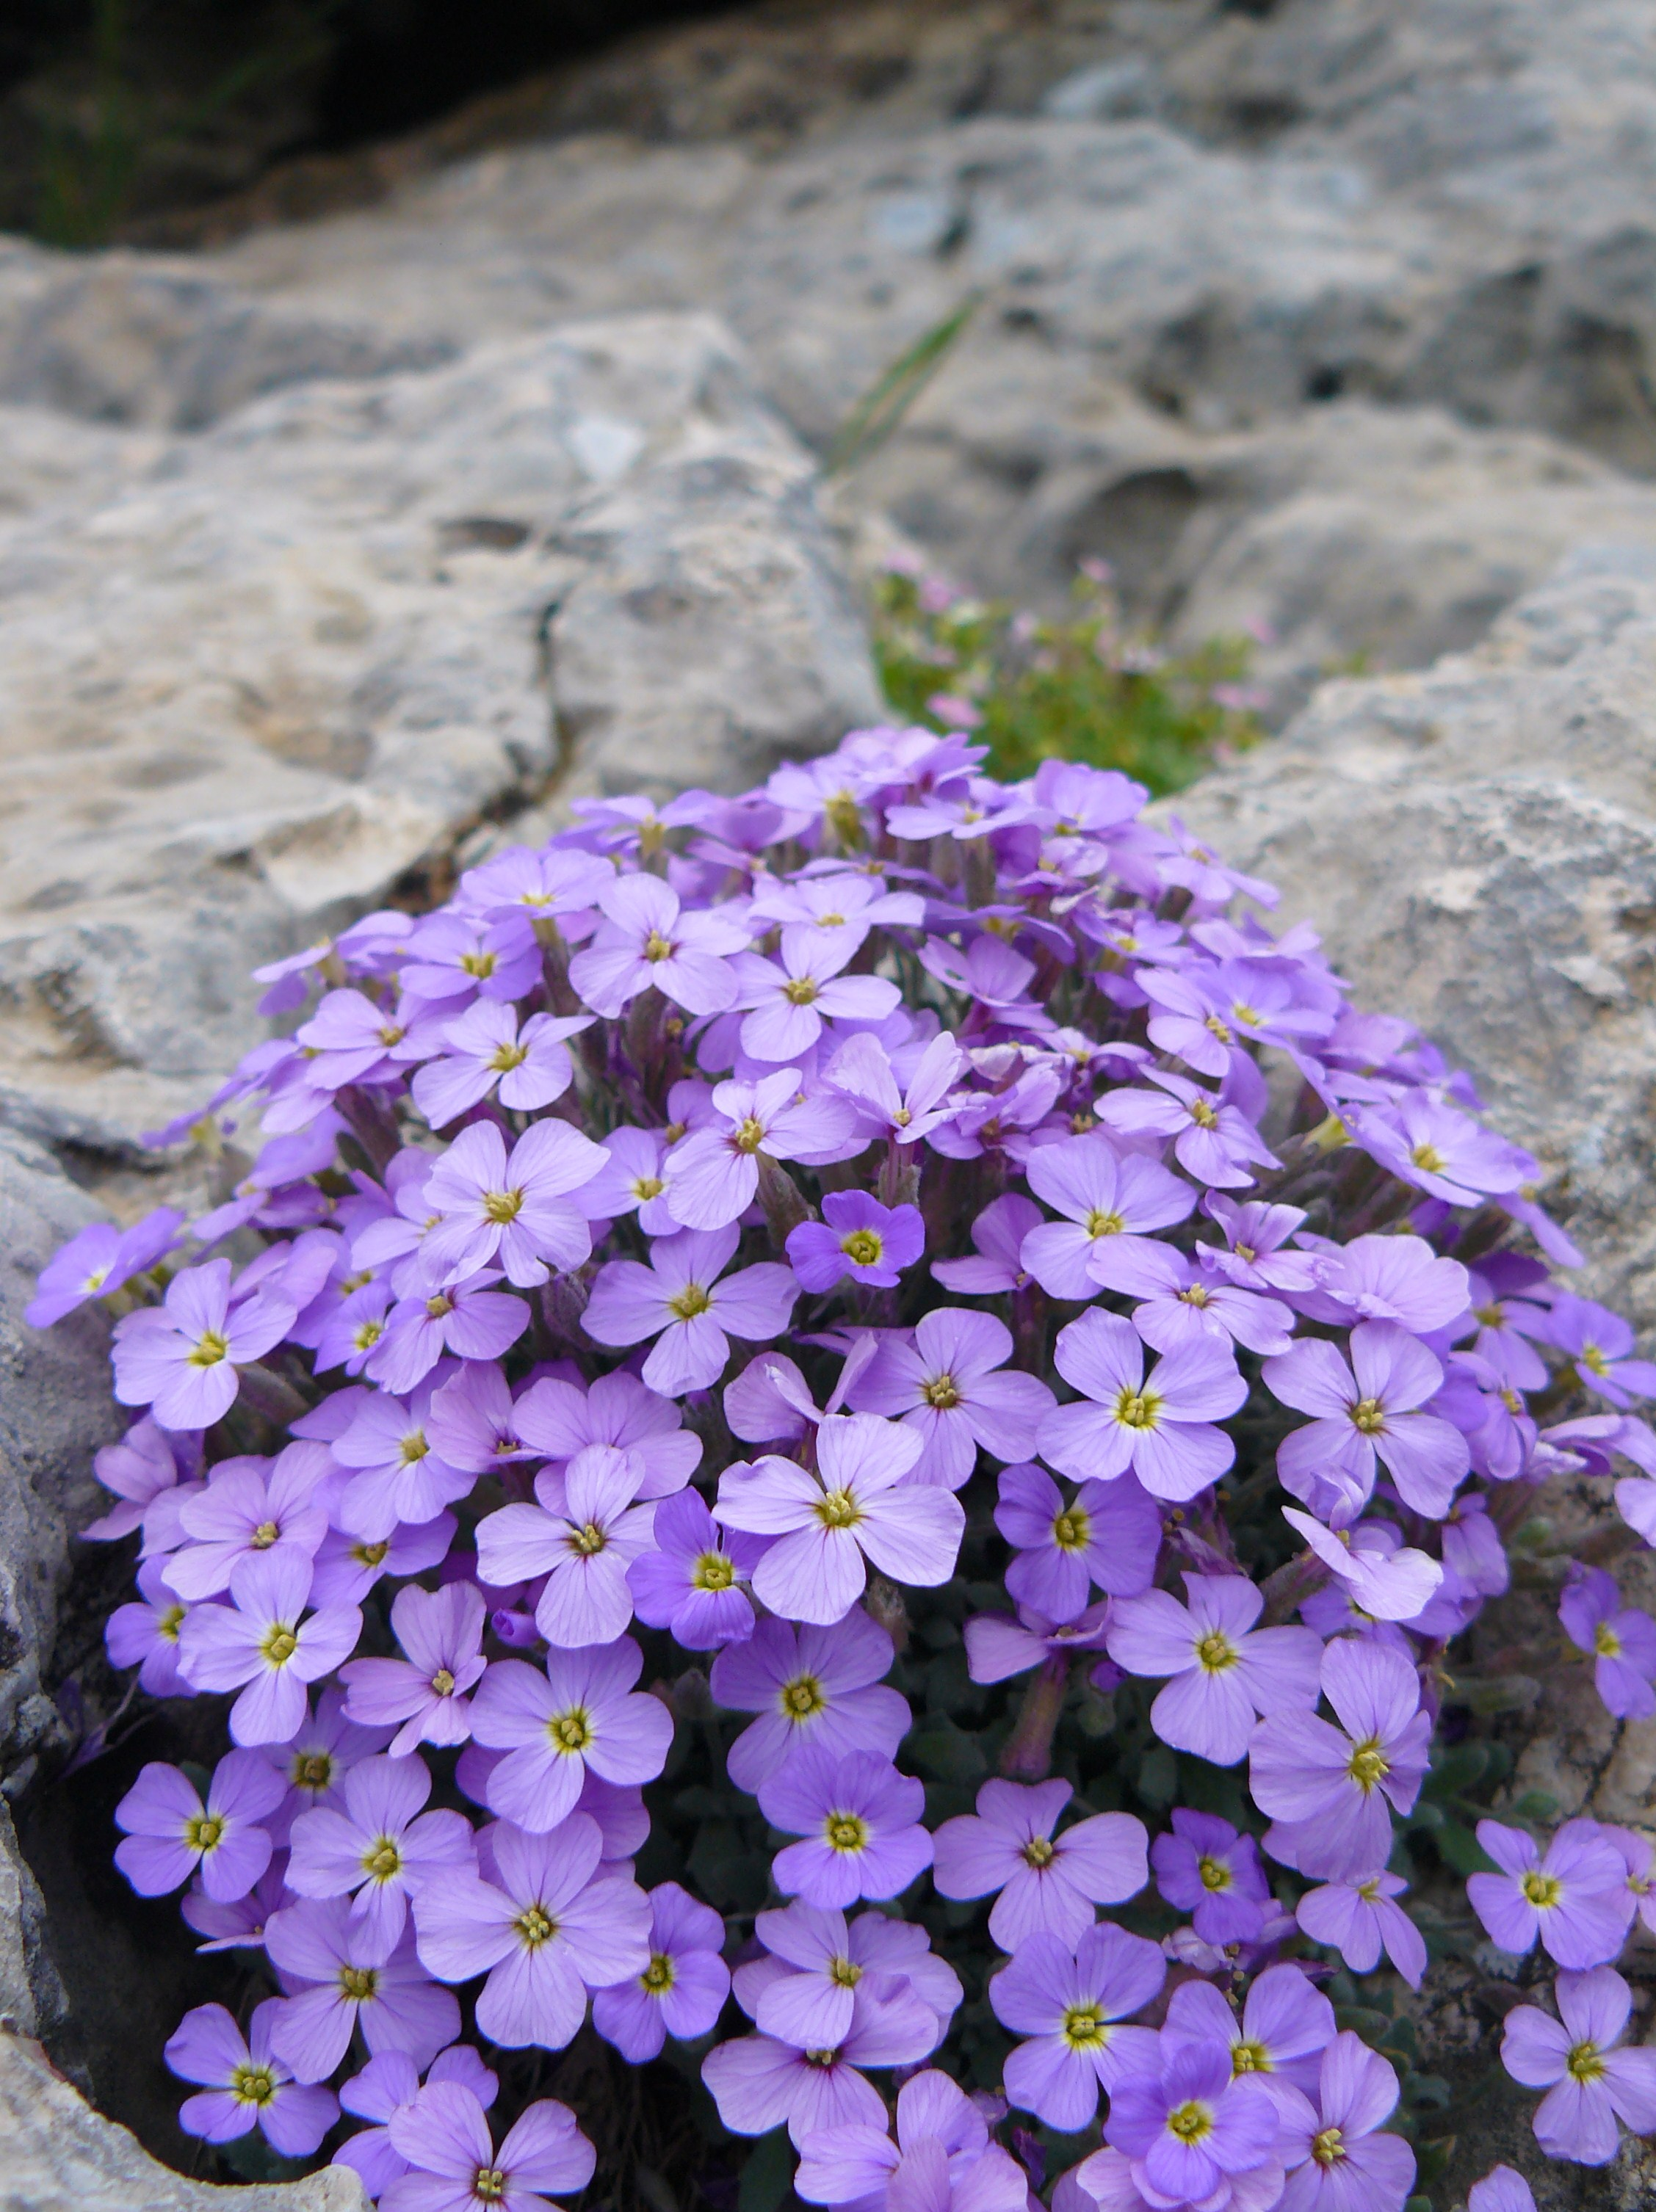 Aubrieta deltoidea (commonly known as purple rock cress) is a perennial wild flower that is used in gardening for its ornamental large inflorescence.